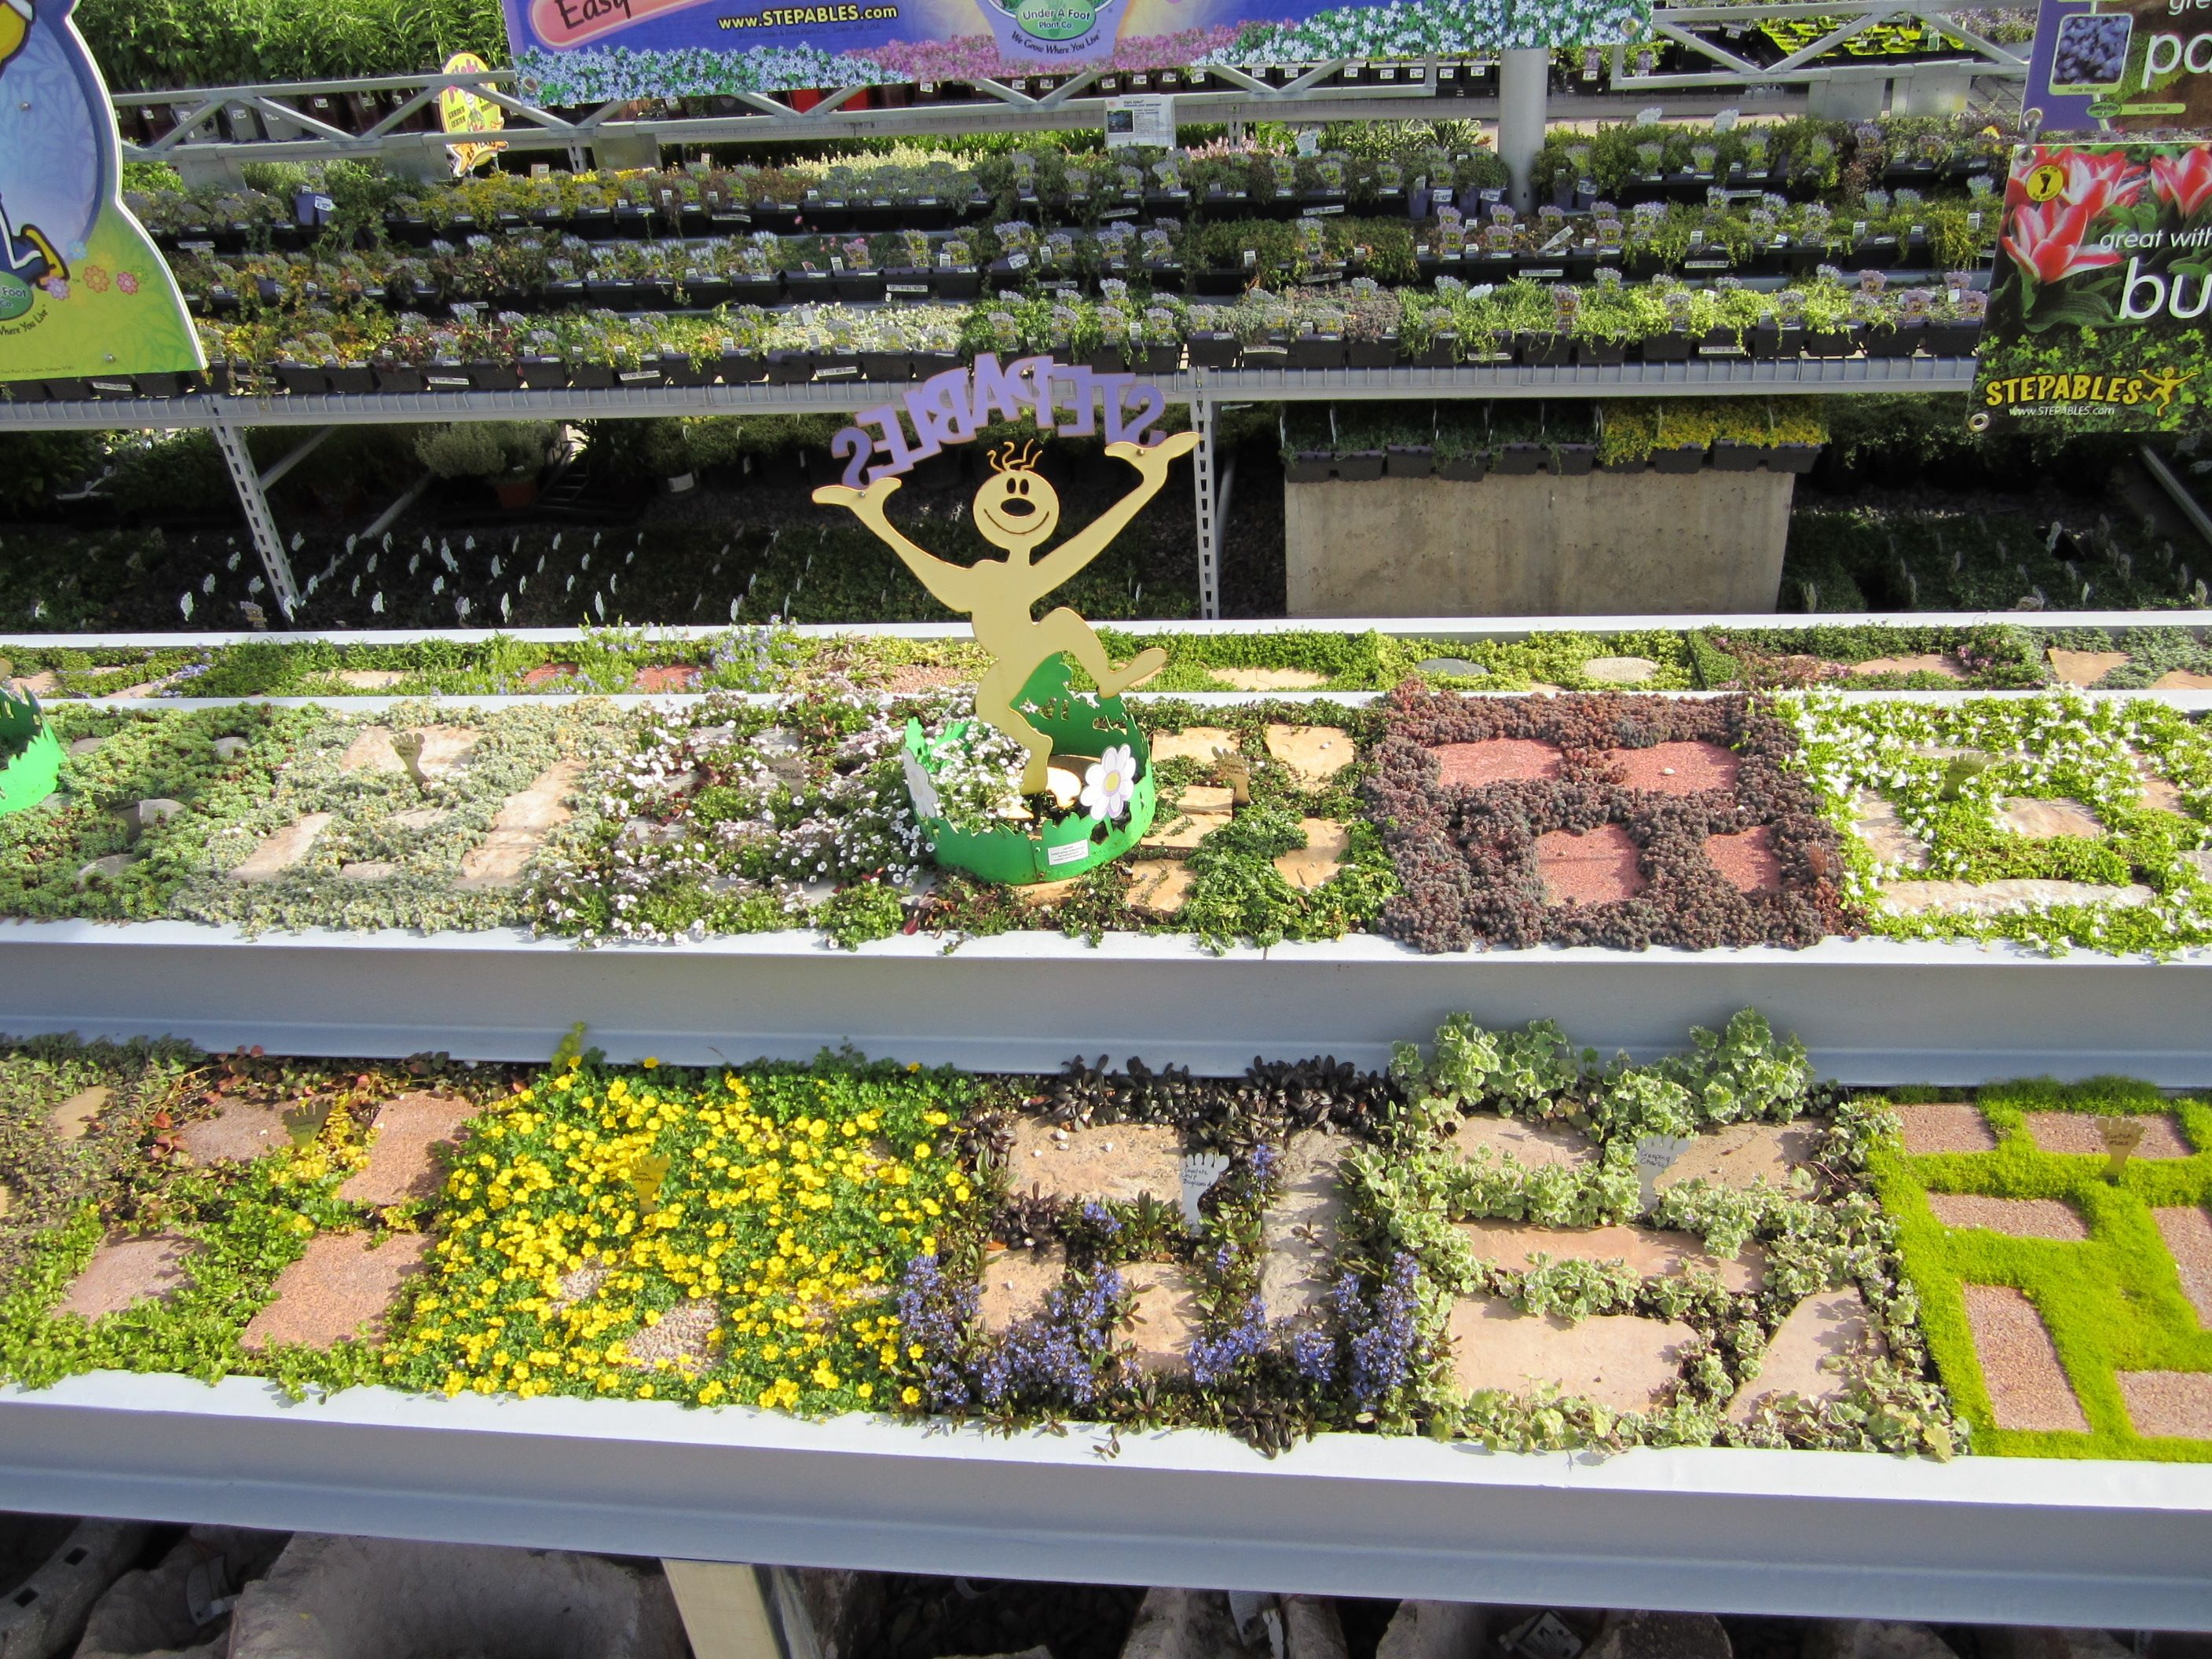 How to grow irish moss ground cover - Our Steppables Display With Plants Such As Irish Moss Scotch Moss Thyme Sedum